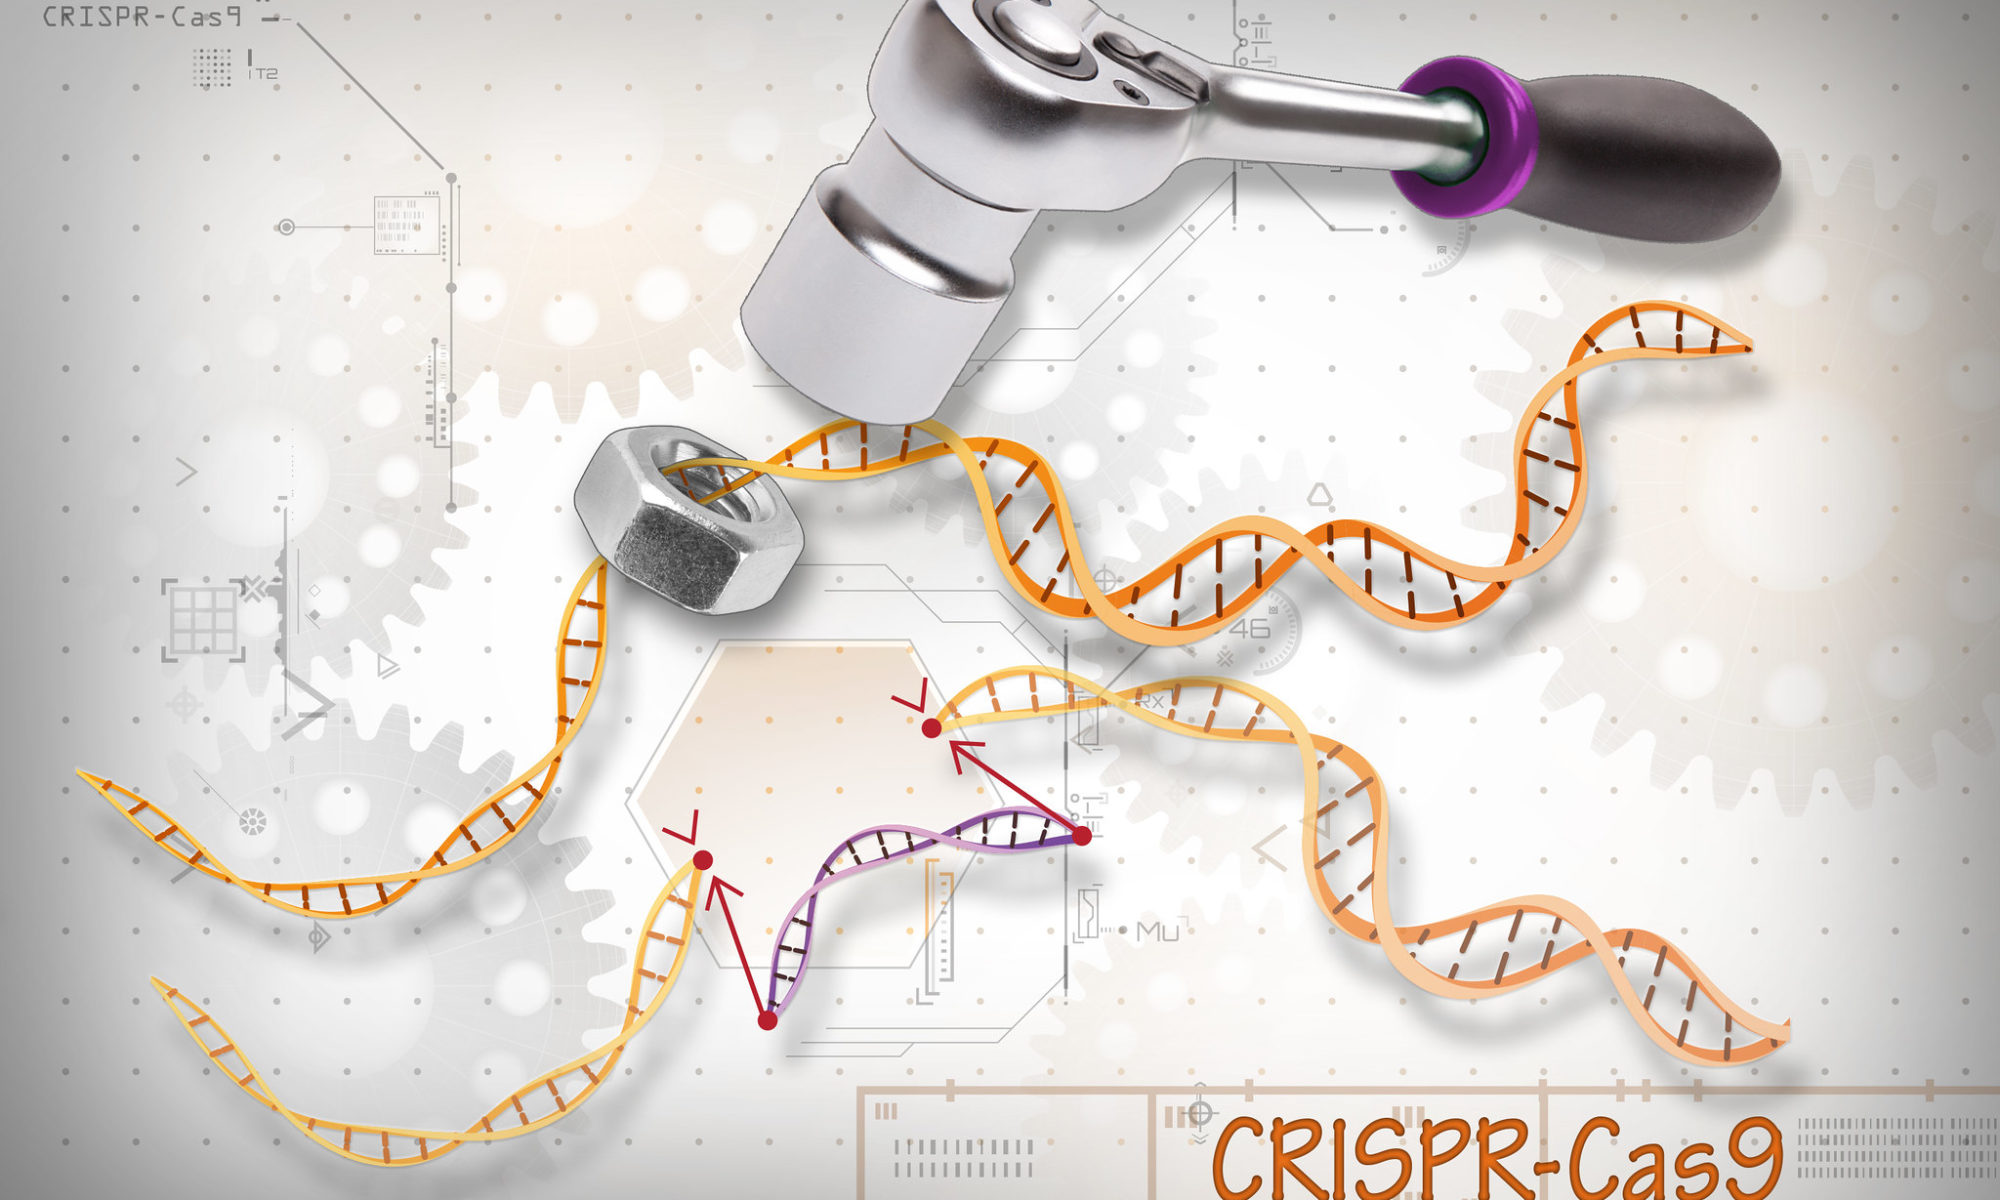 Crispr-Cas9, les « ciseaux génétiques », fruit des récentes avancées en recherche génomique. Illustration CC-by-nc par National Institutes of Health https://flic.kr/p/Ja54yu.